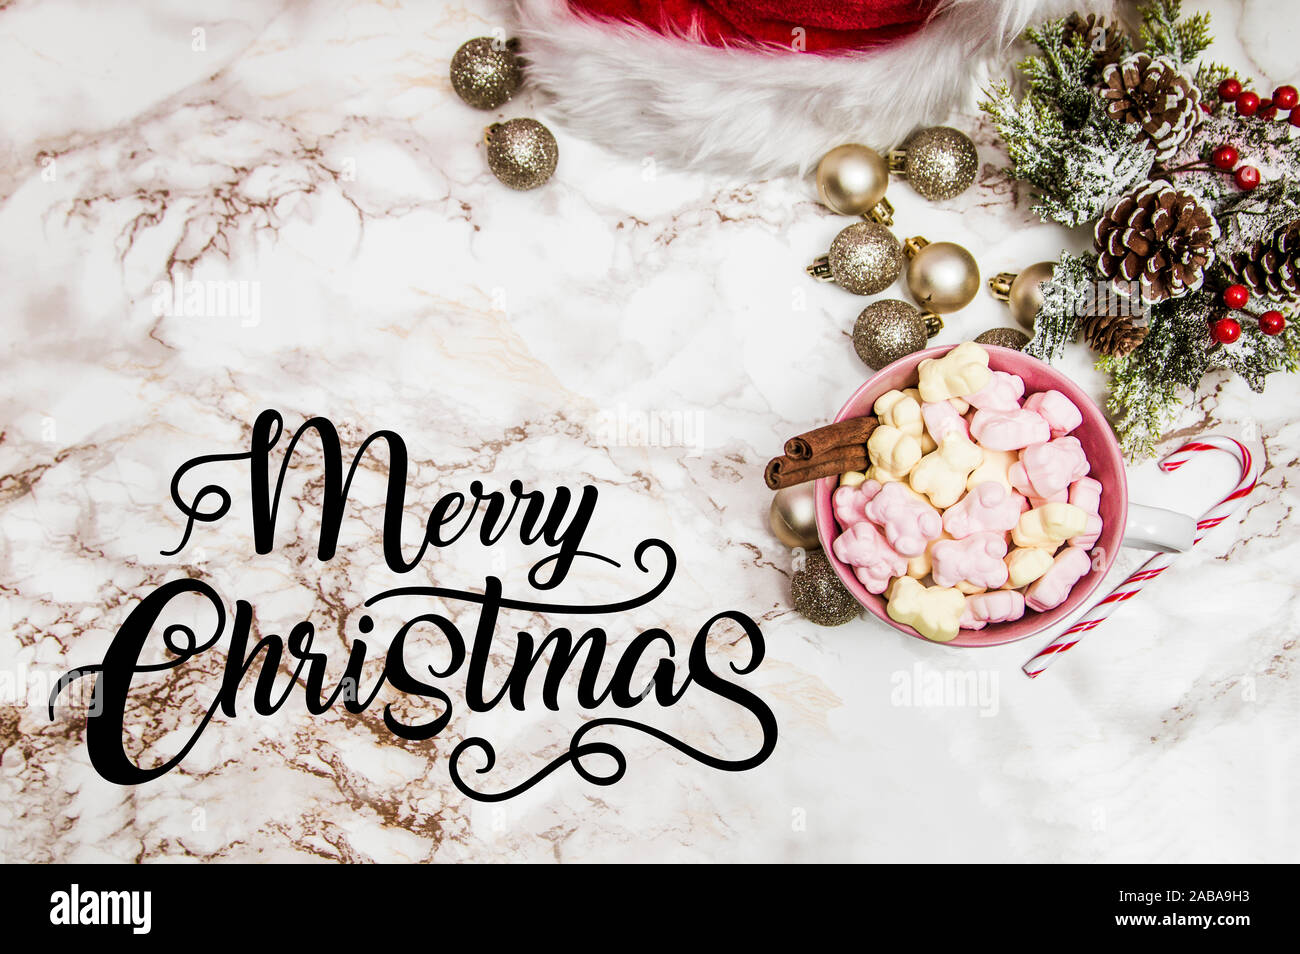 Pink White Mug With Marshmallows Christmas Tree Ornaments And Santa Claus Hat On A Marble And Pink Background With The Quote Merry Christmas Stock Photo Alamy